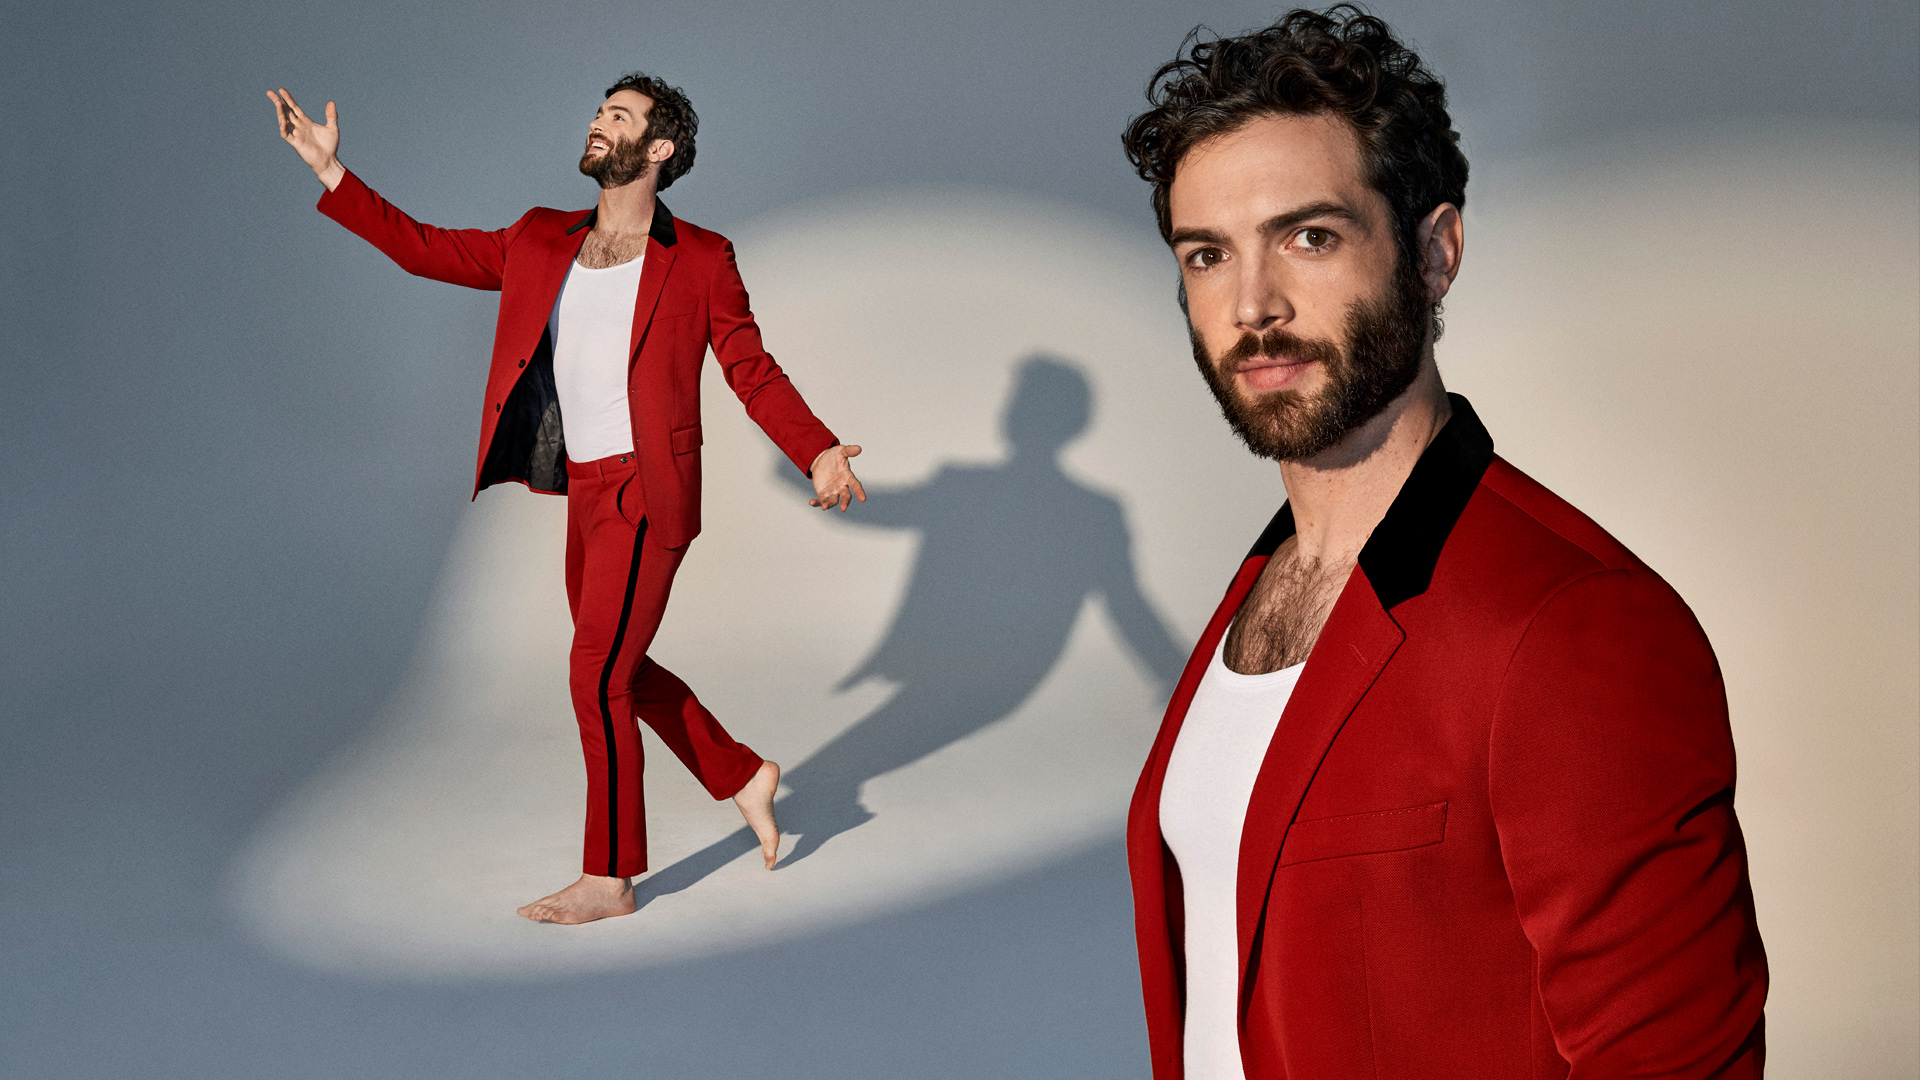 Ethan Peck is set to become a legend